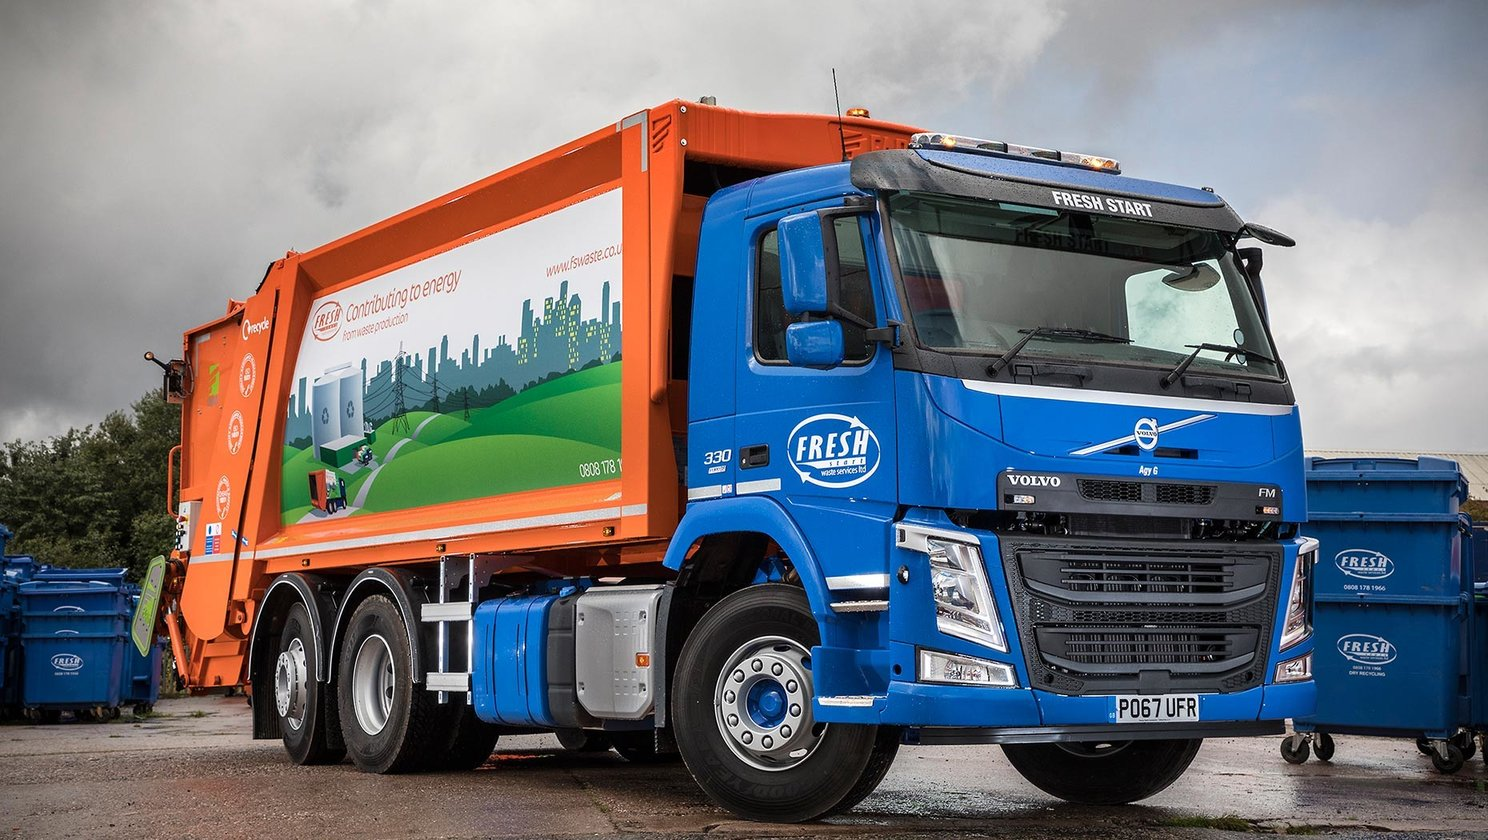 Fresh start waste names new Volvo Fm after world arm-wrestling champion 'AGY G.'